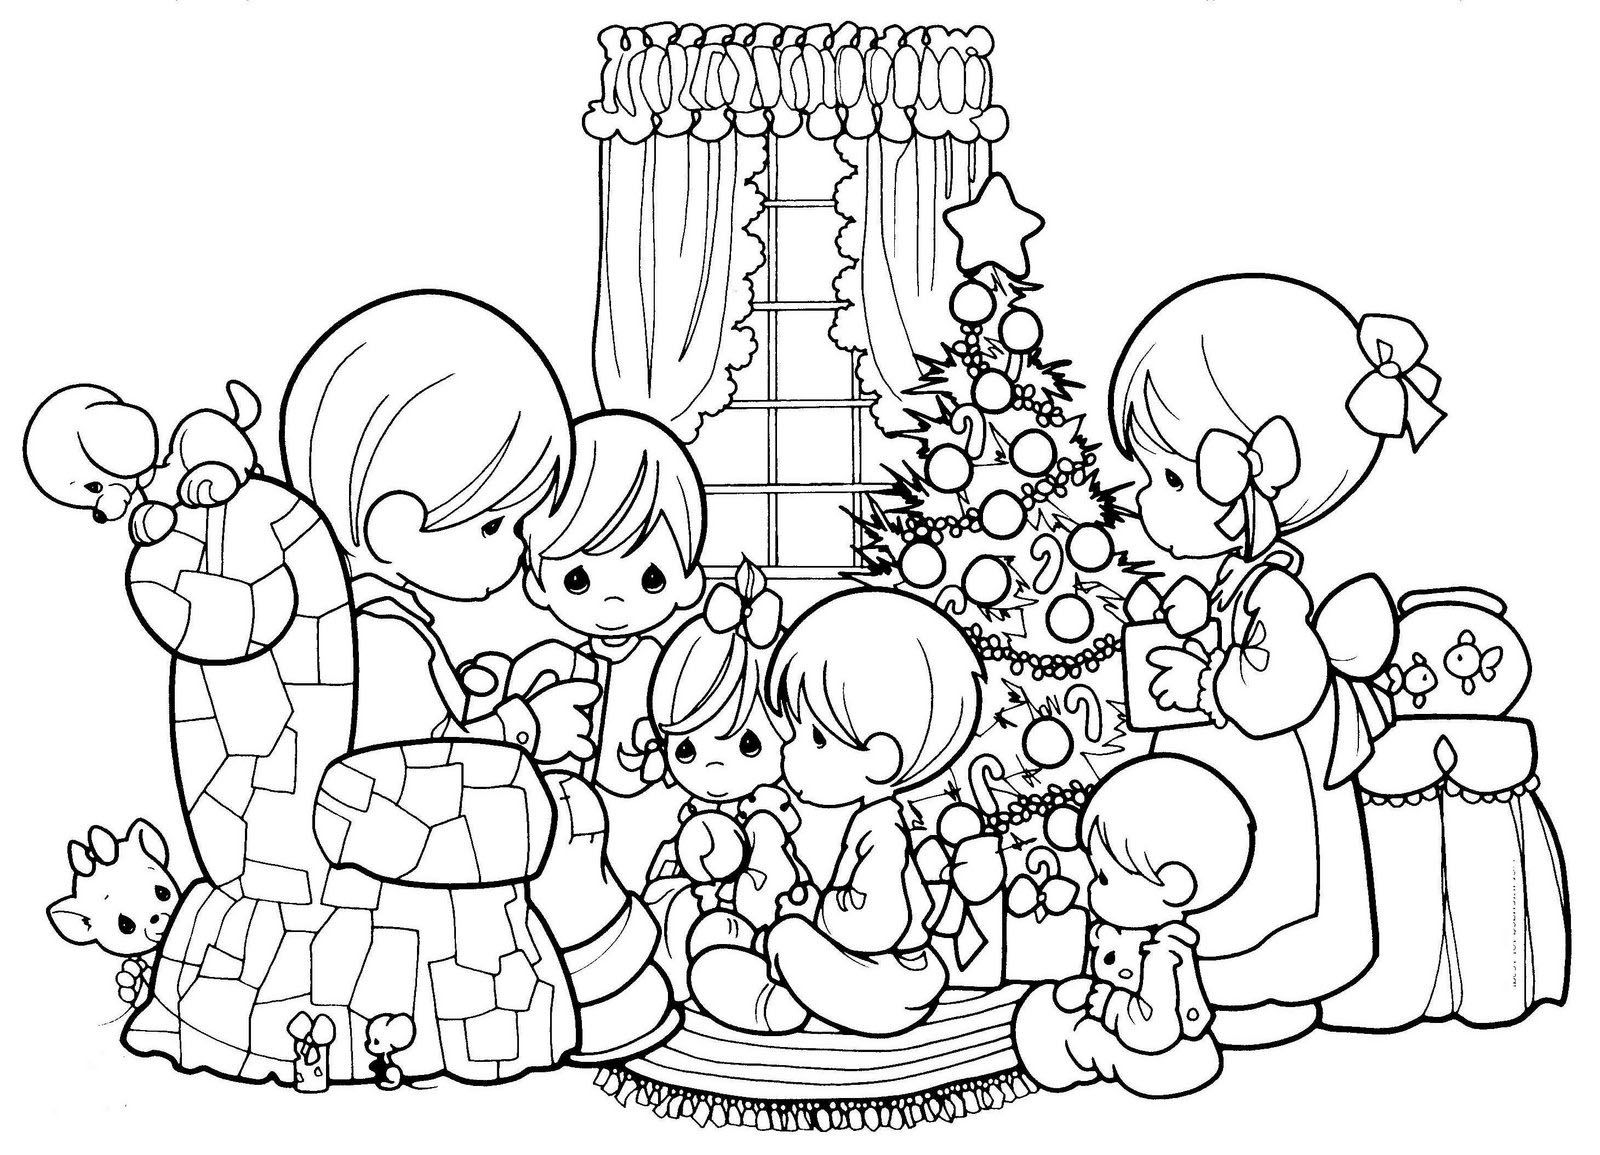 To print this free coloring page coloriagepreciousmoments click